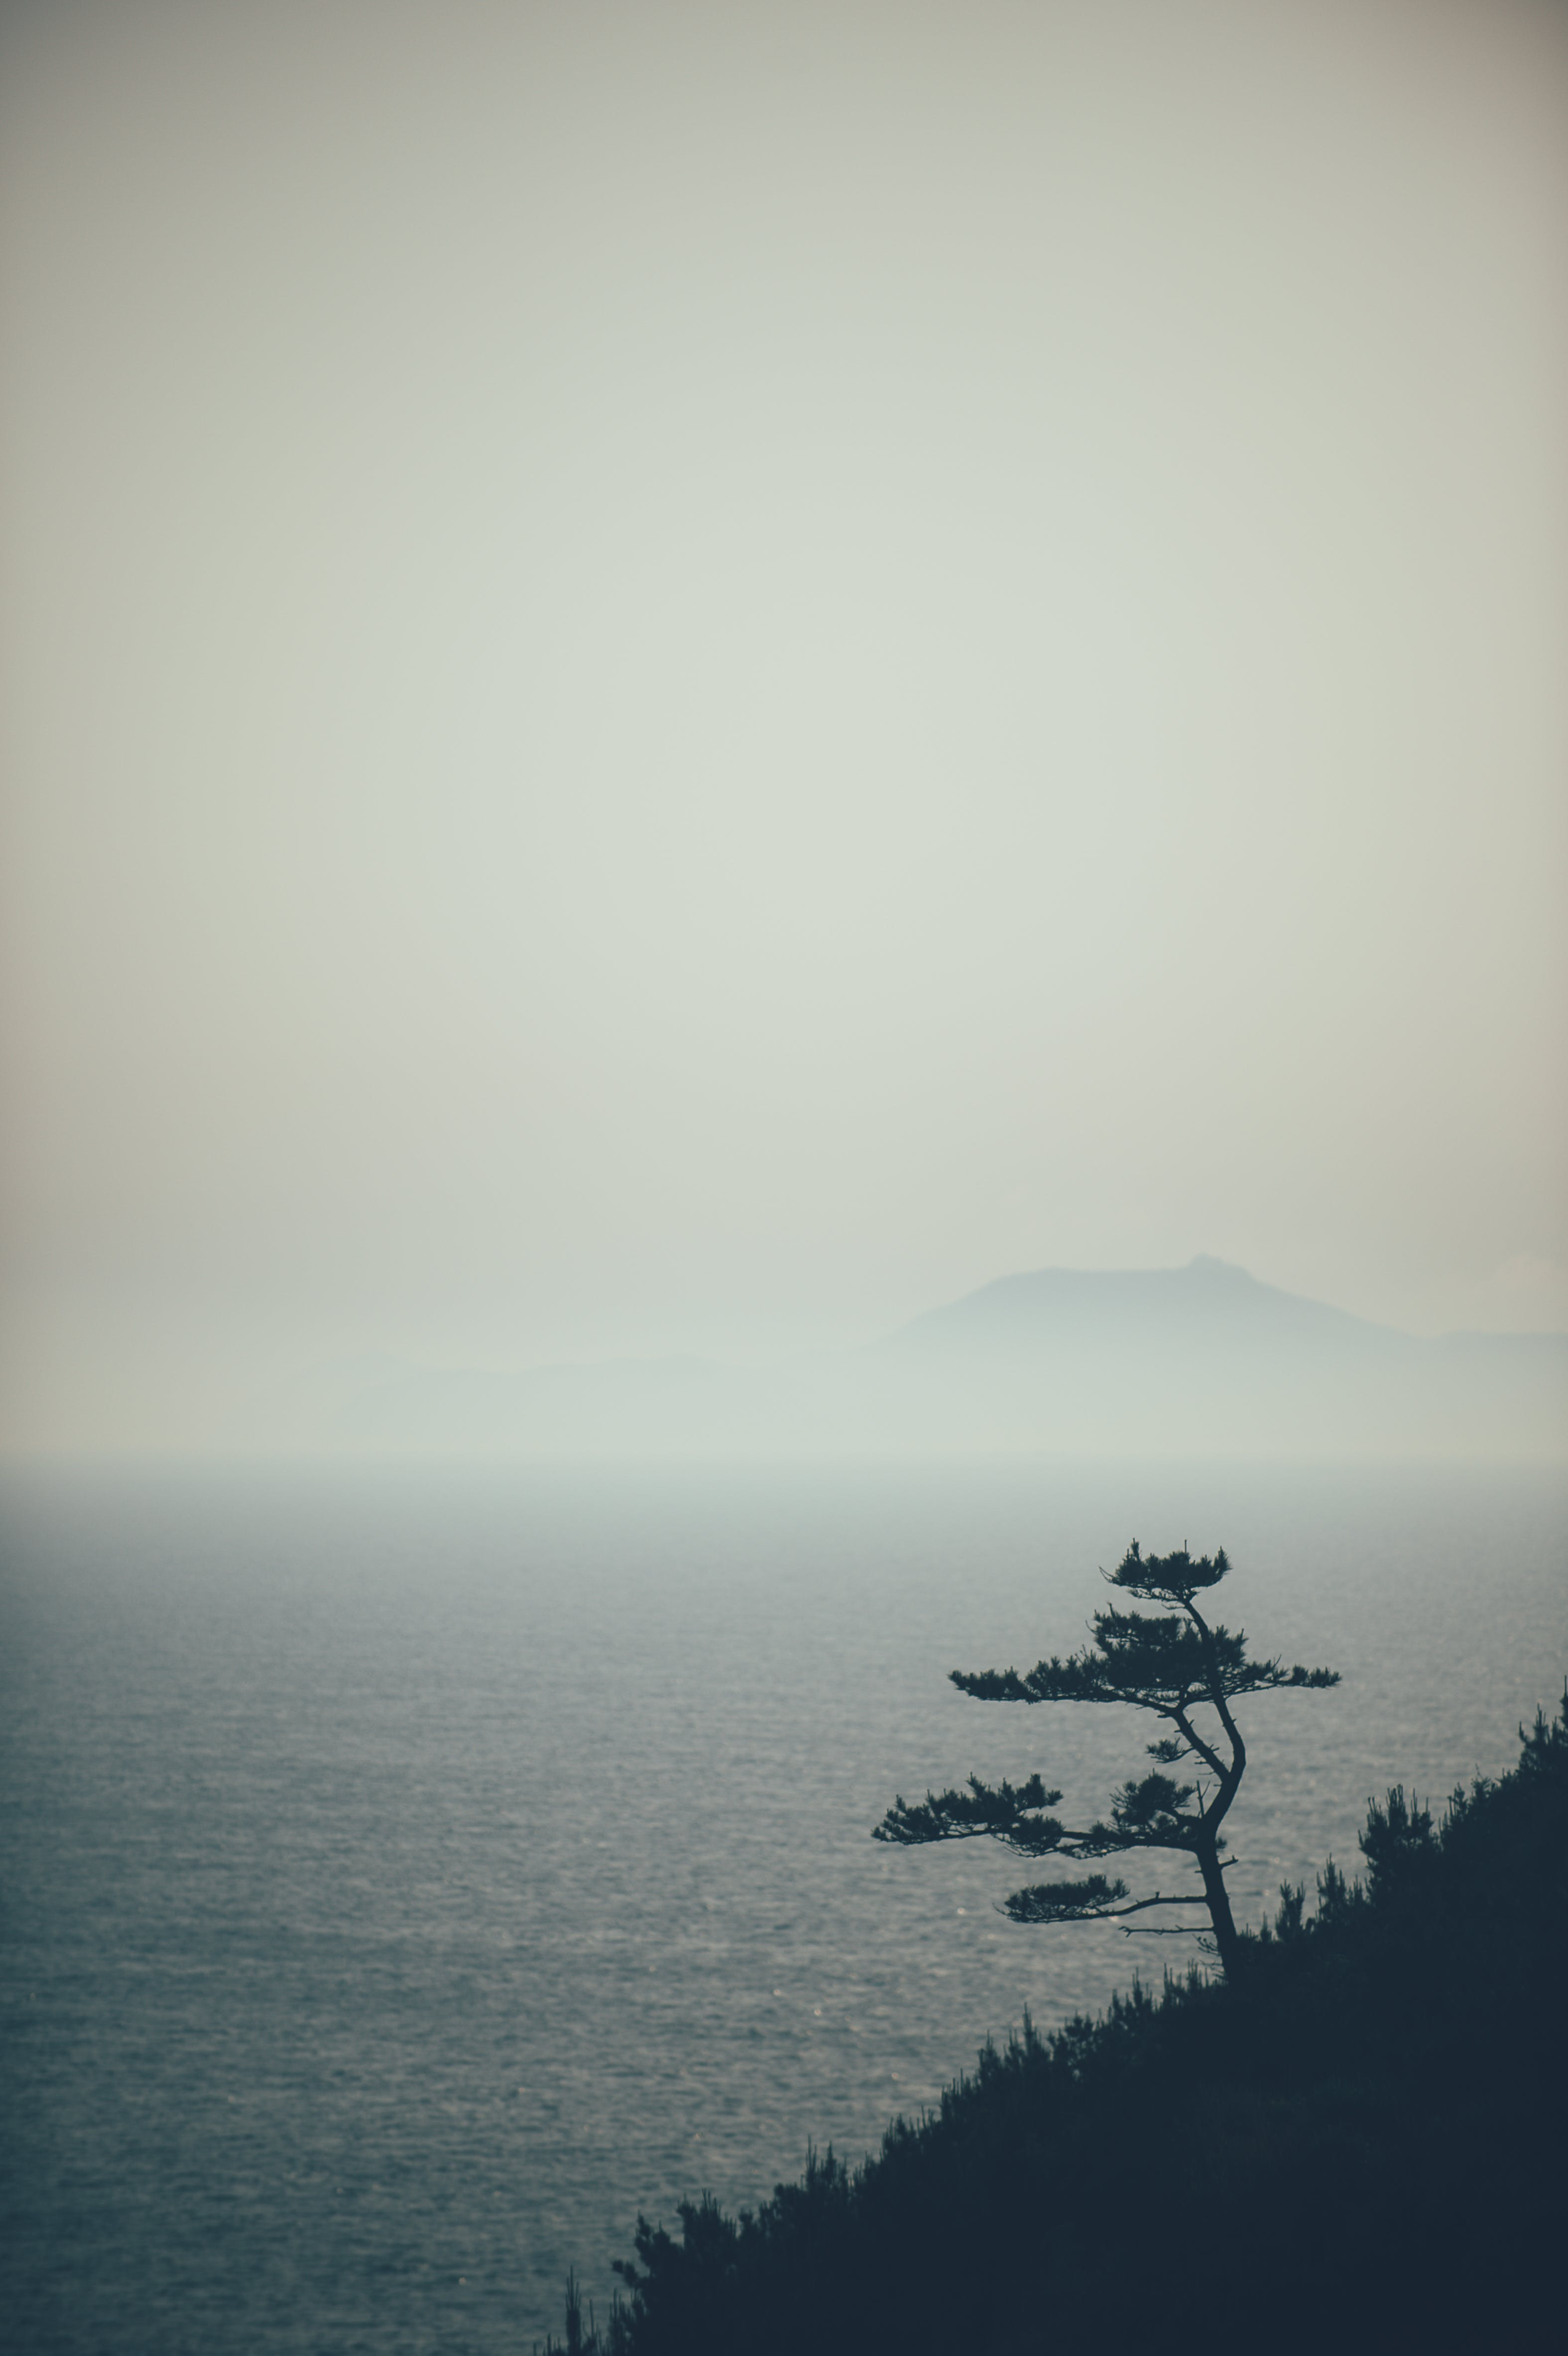 the cliff, The Pine, the sea